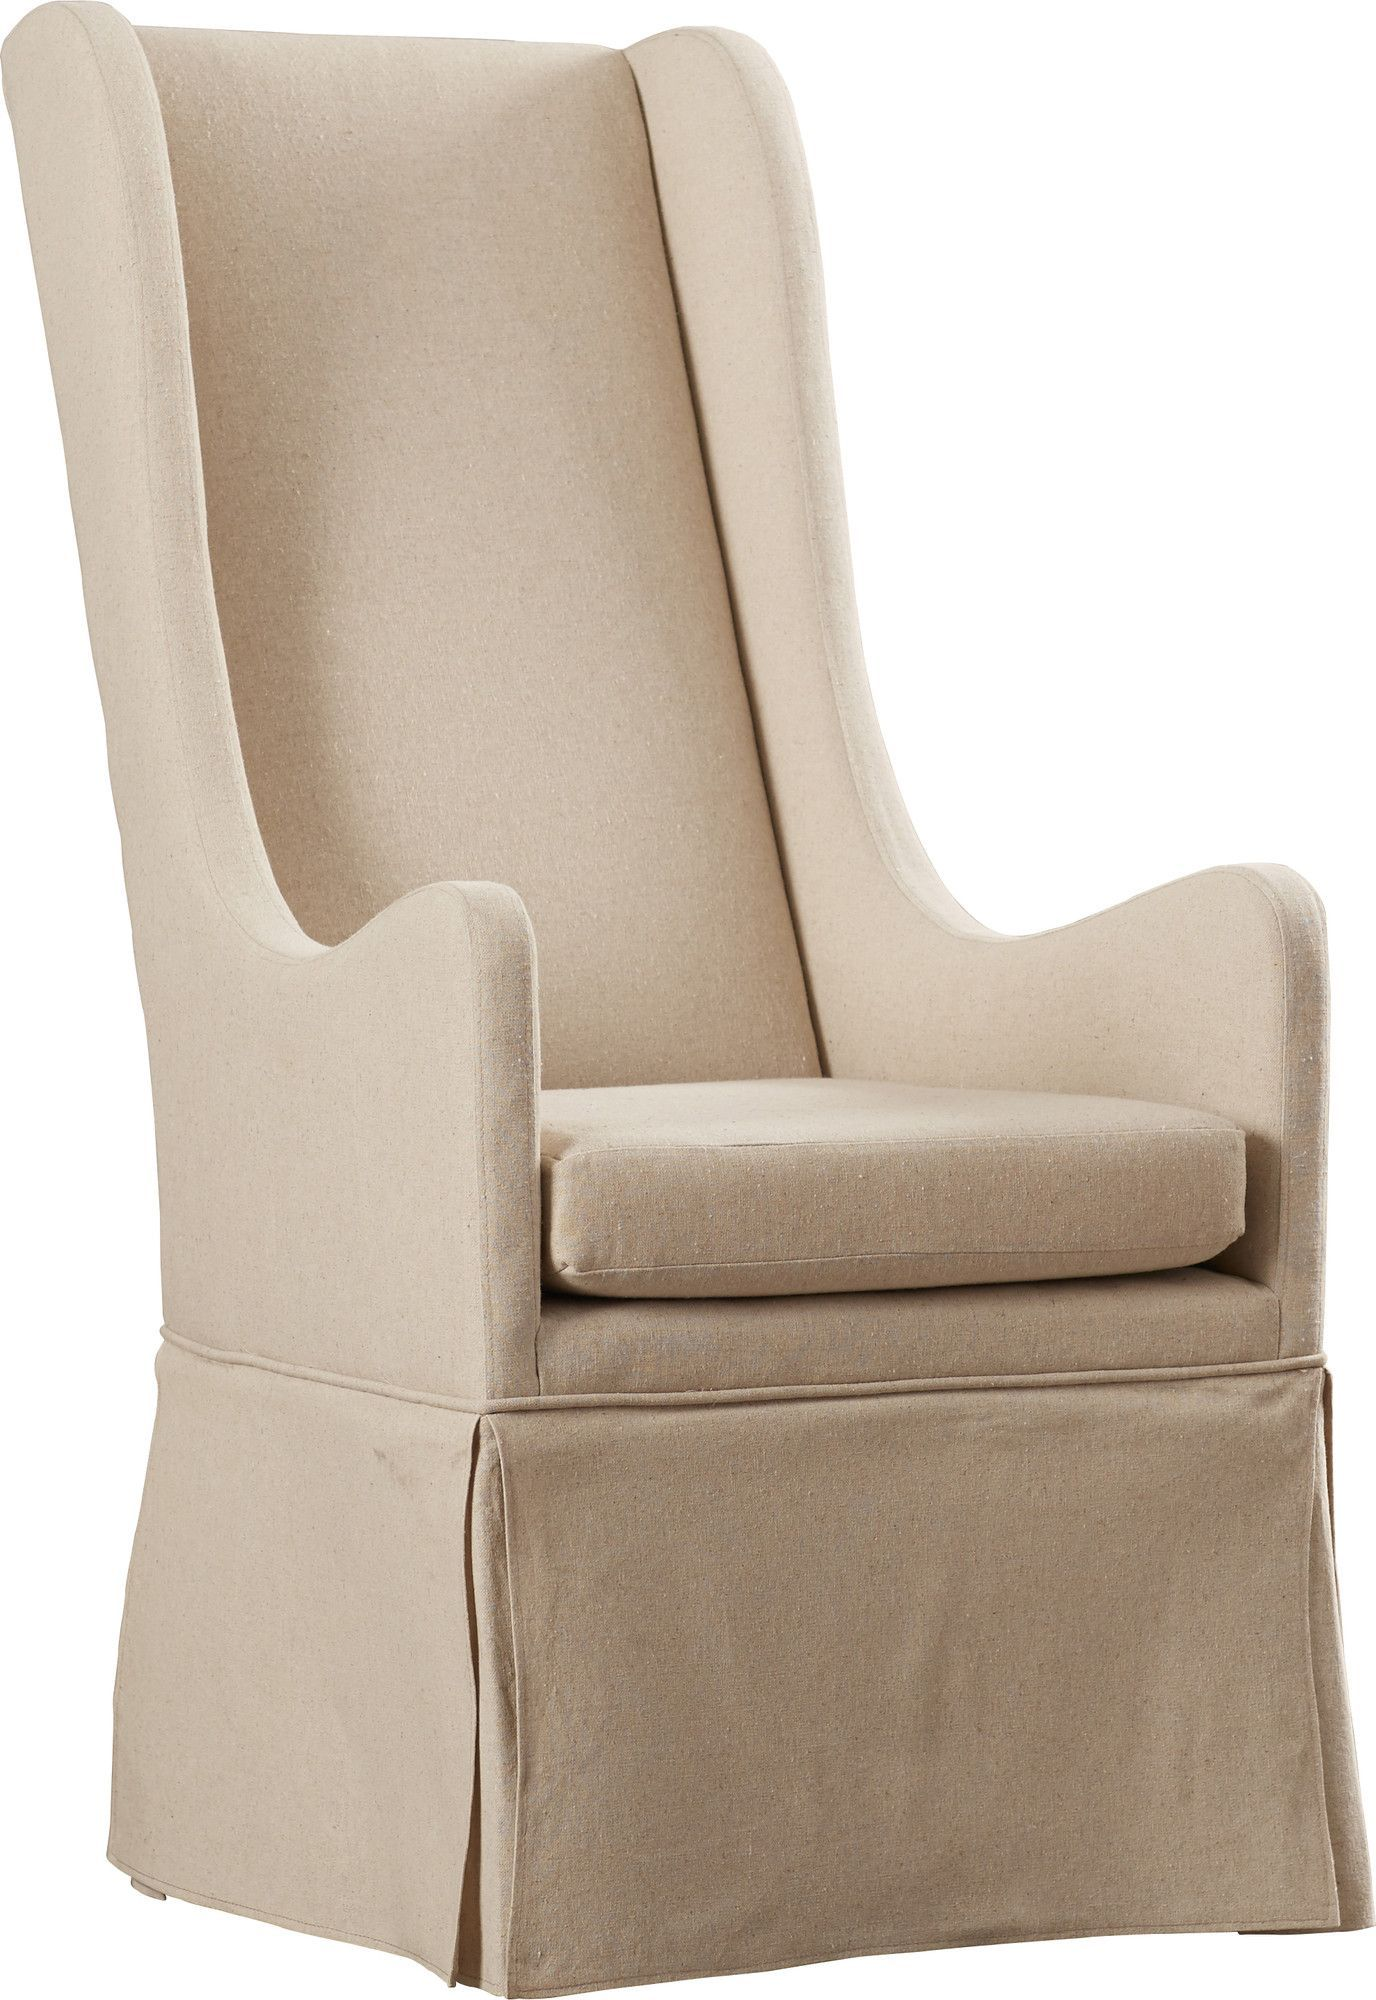 Features Material Linen fabric and Chinese hardwood